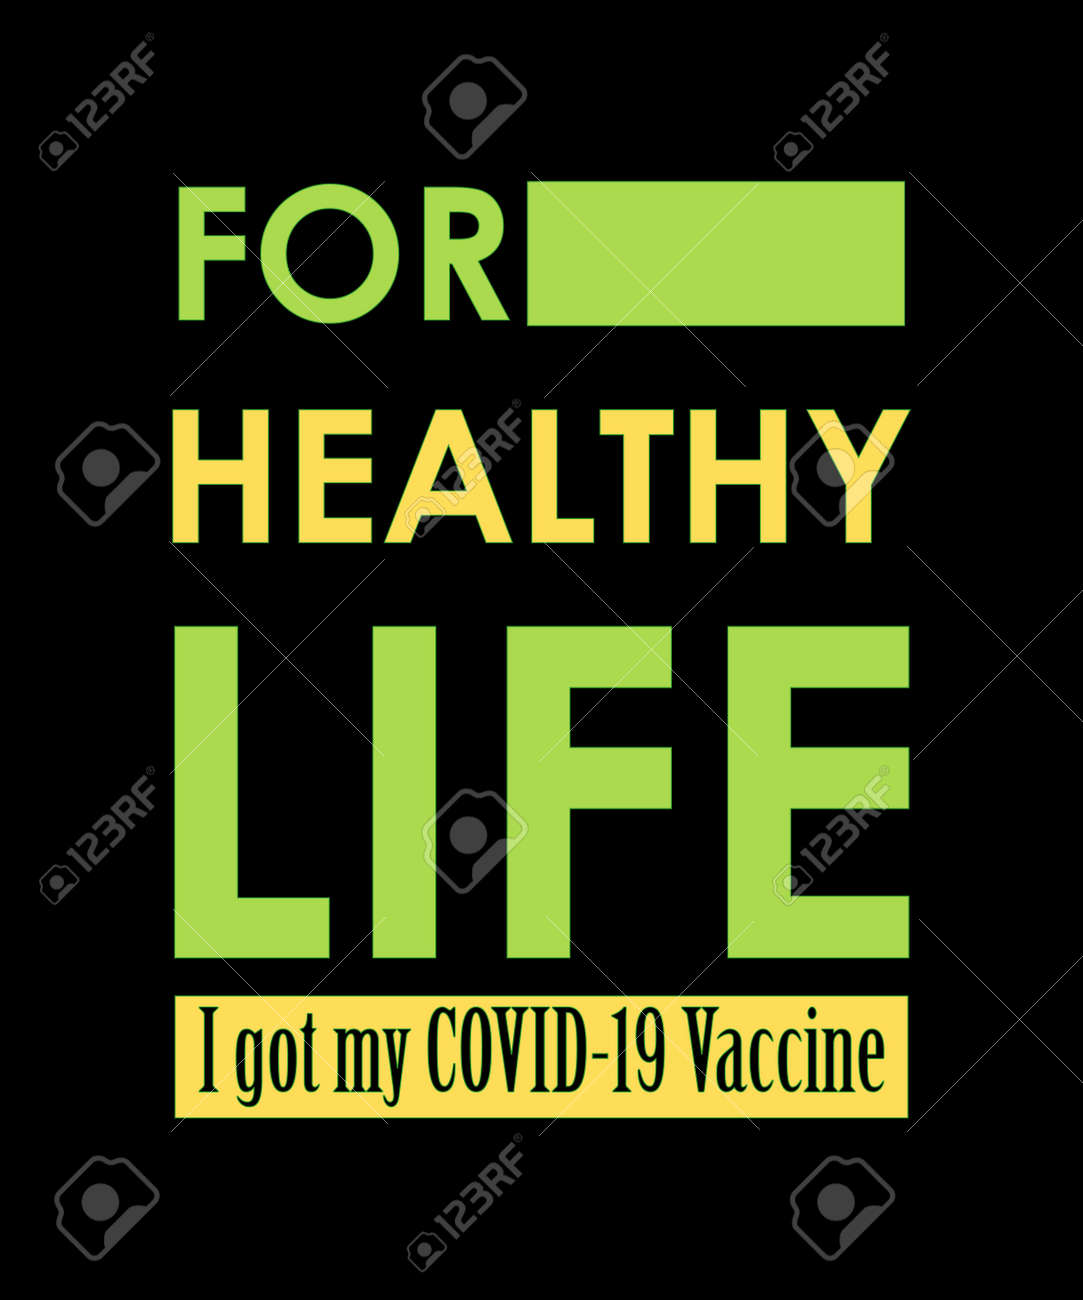 For a healthy life, I got my COVID-19 vaccine. Coronavirus awareness T-shirt vector typography design. And posters, banner, and social media post. - 165350001